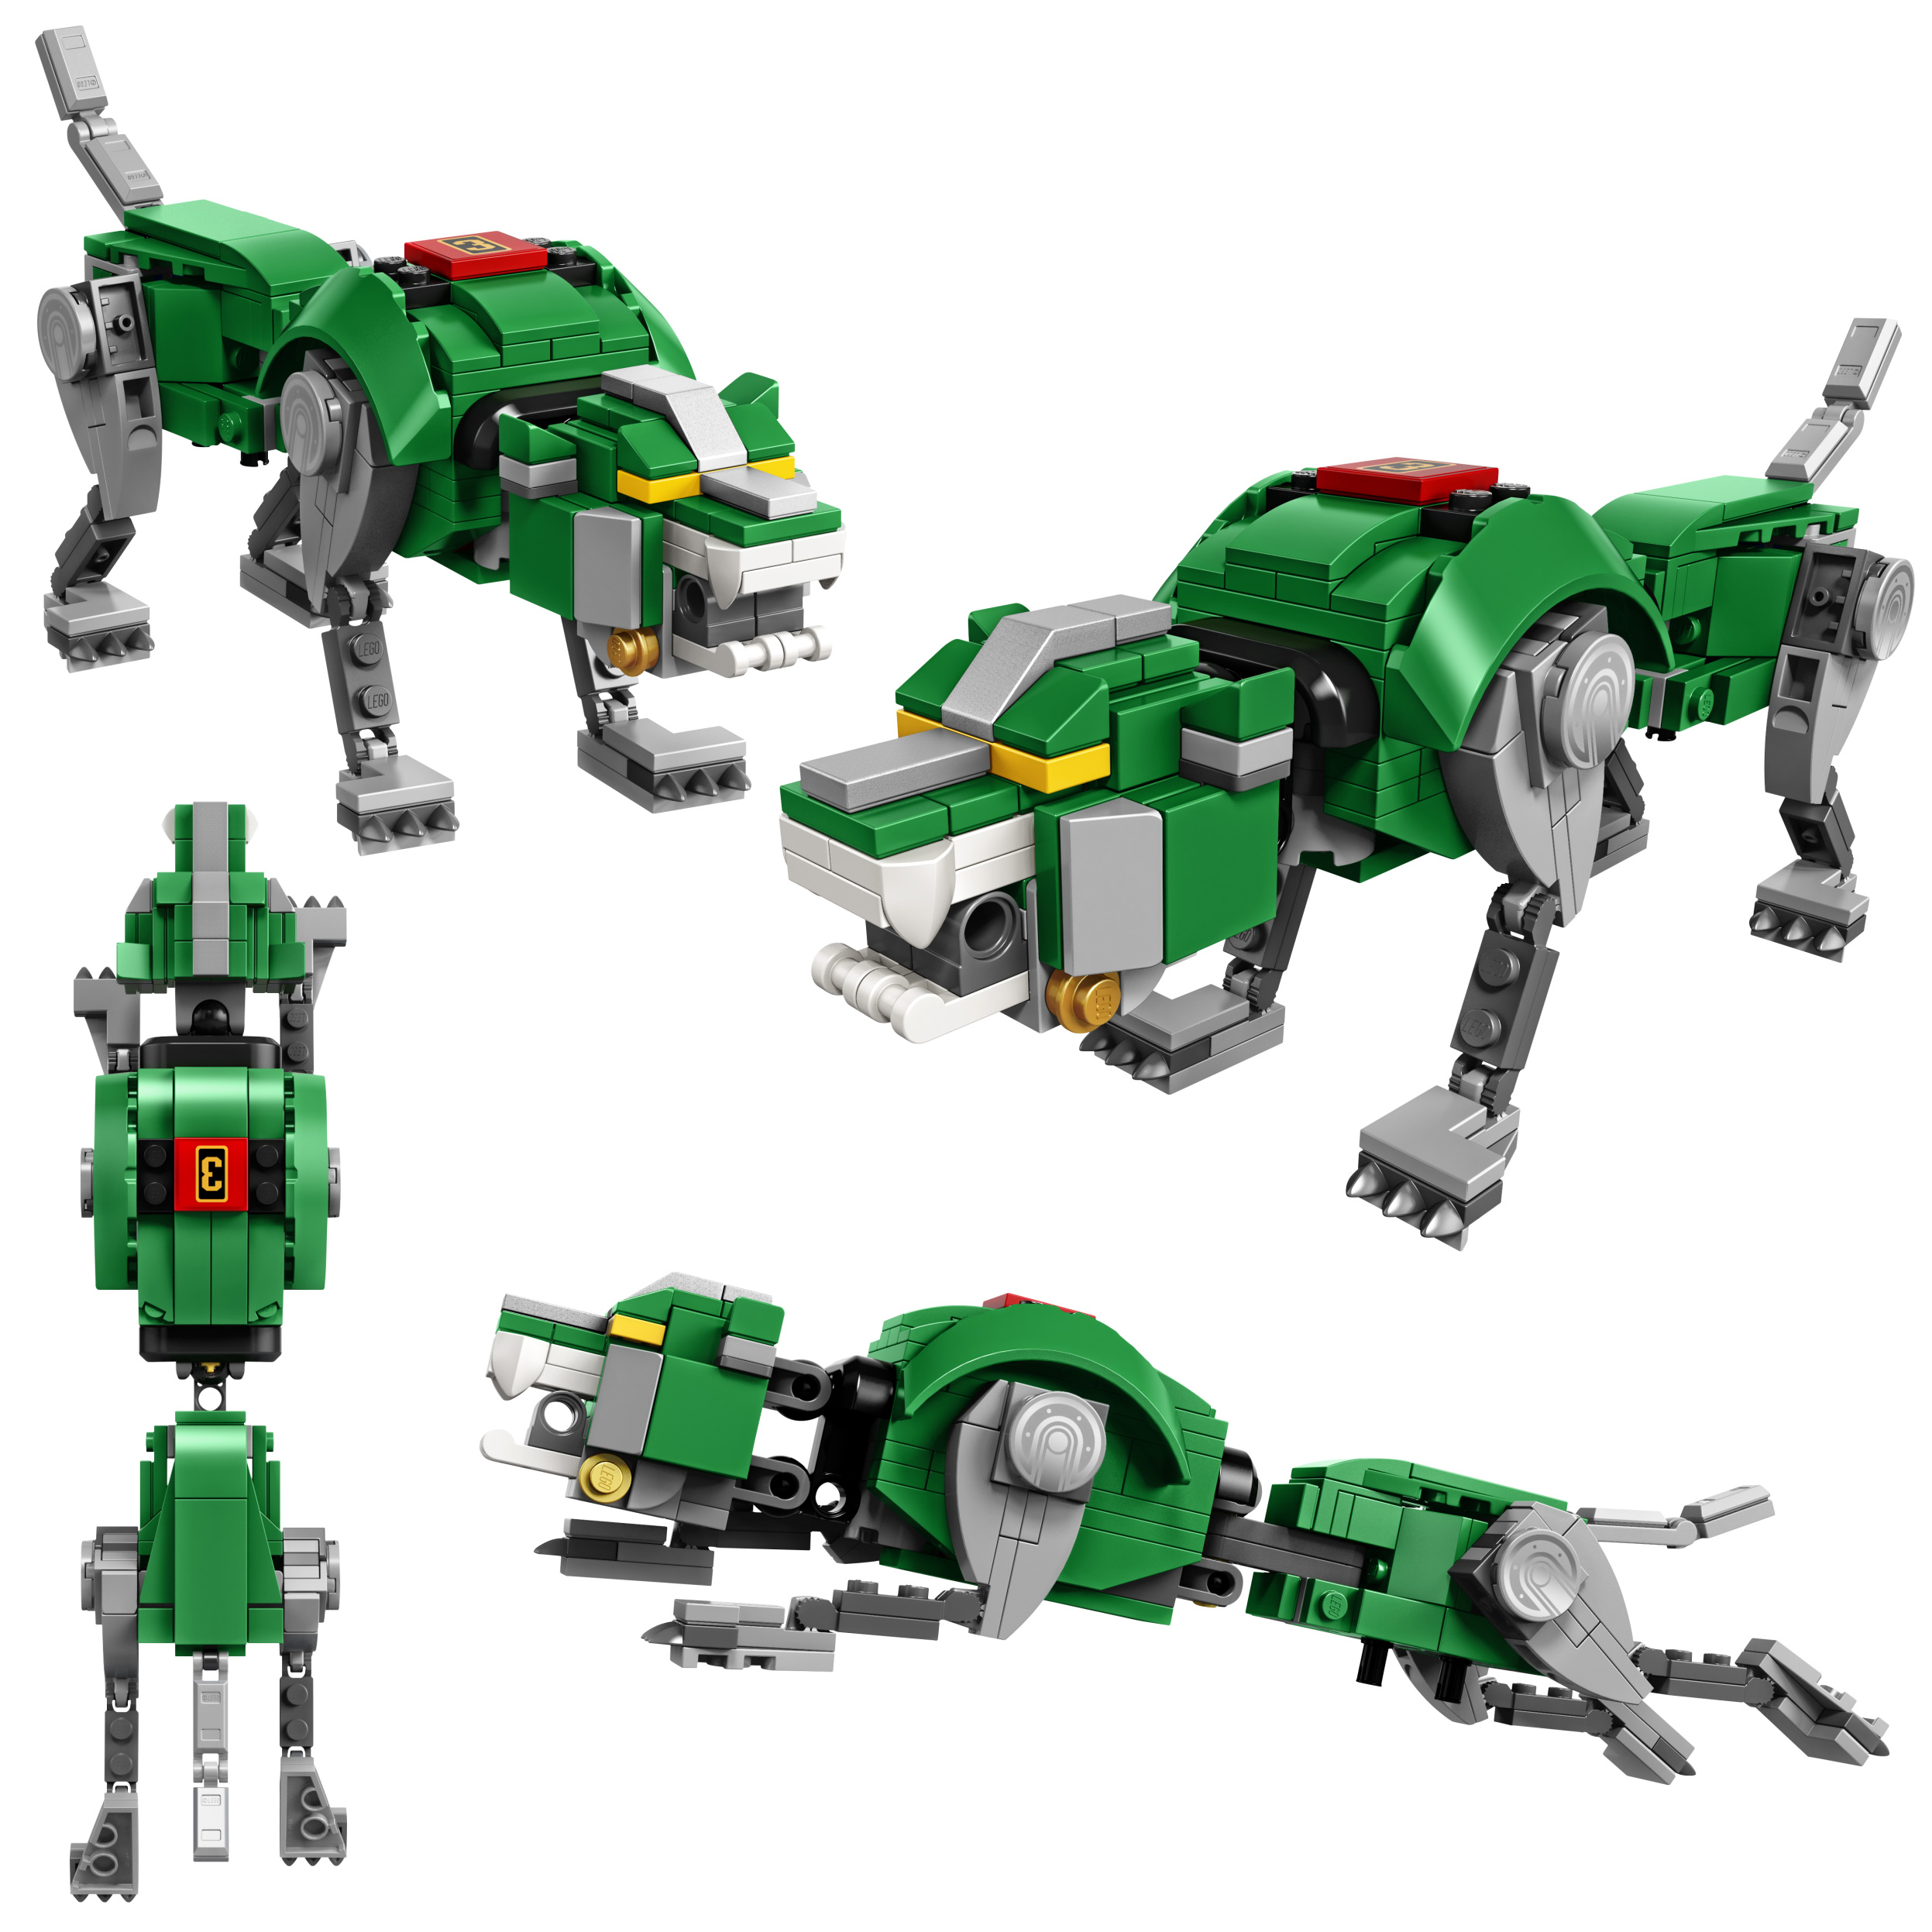 The Green Lion is the left arm of the giant robot.